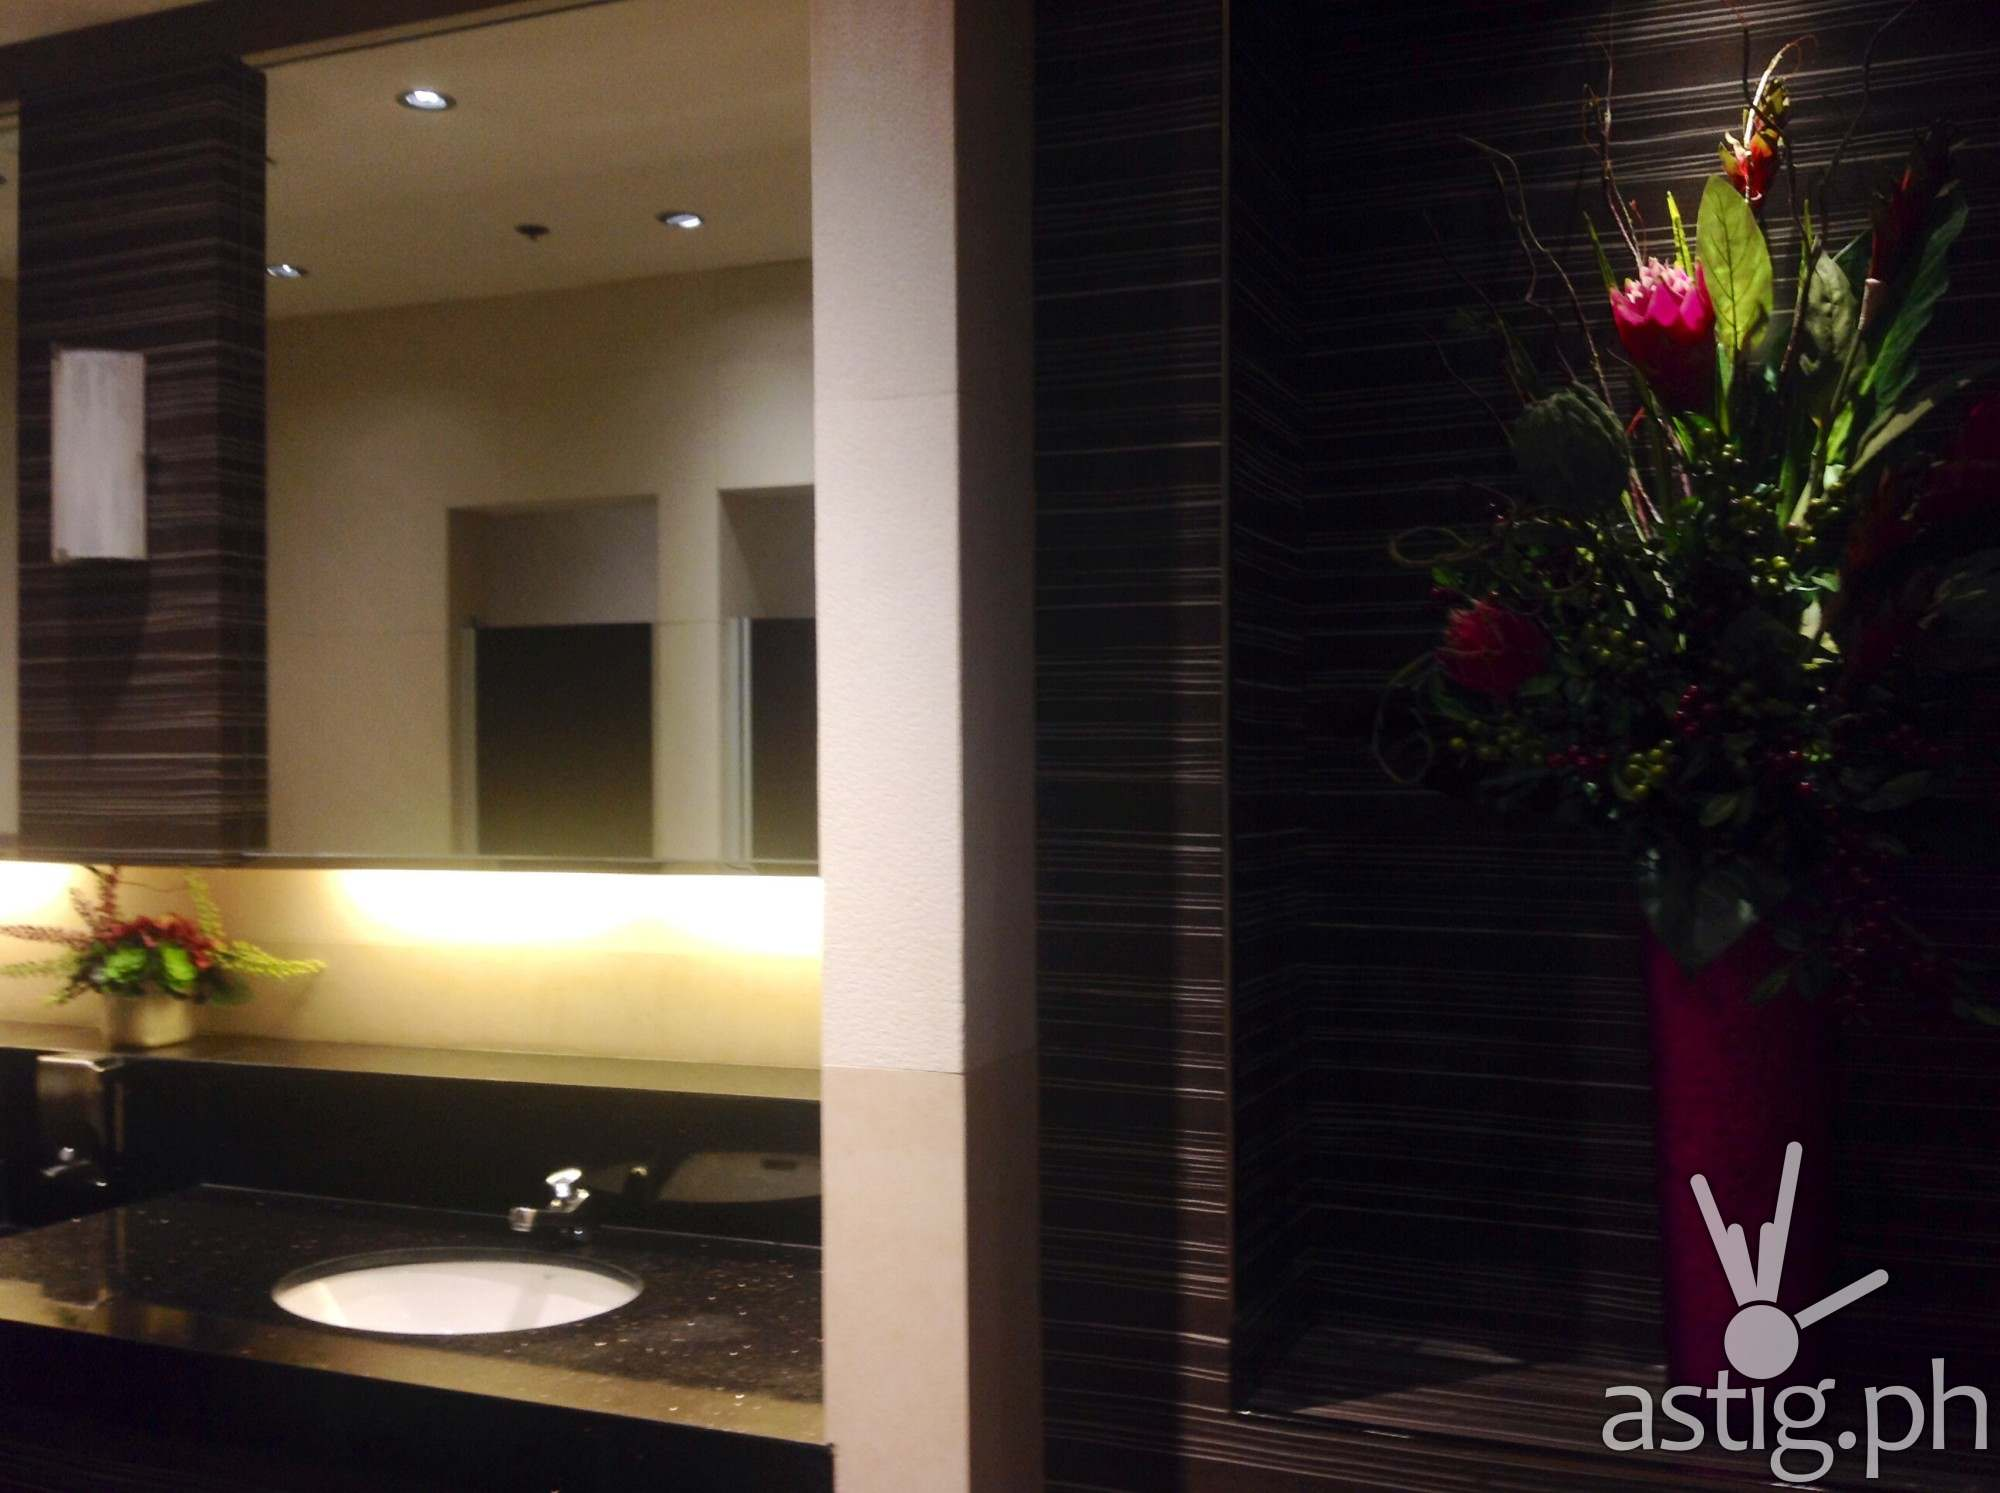 Hotel-like restrooms are the norm at the New Promenade mall in Greenhills